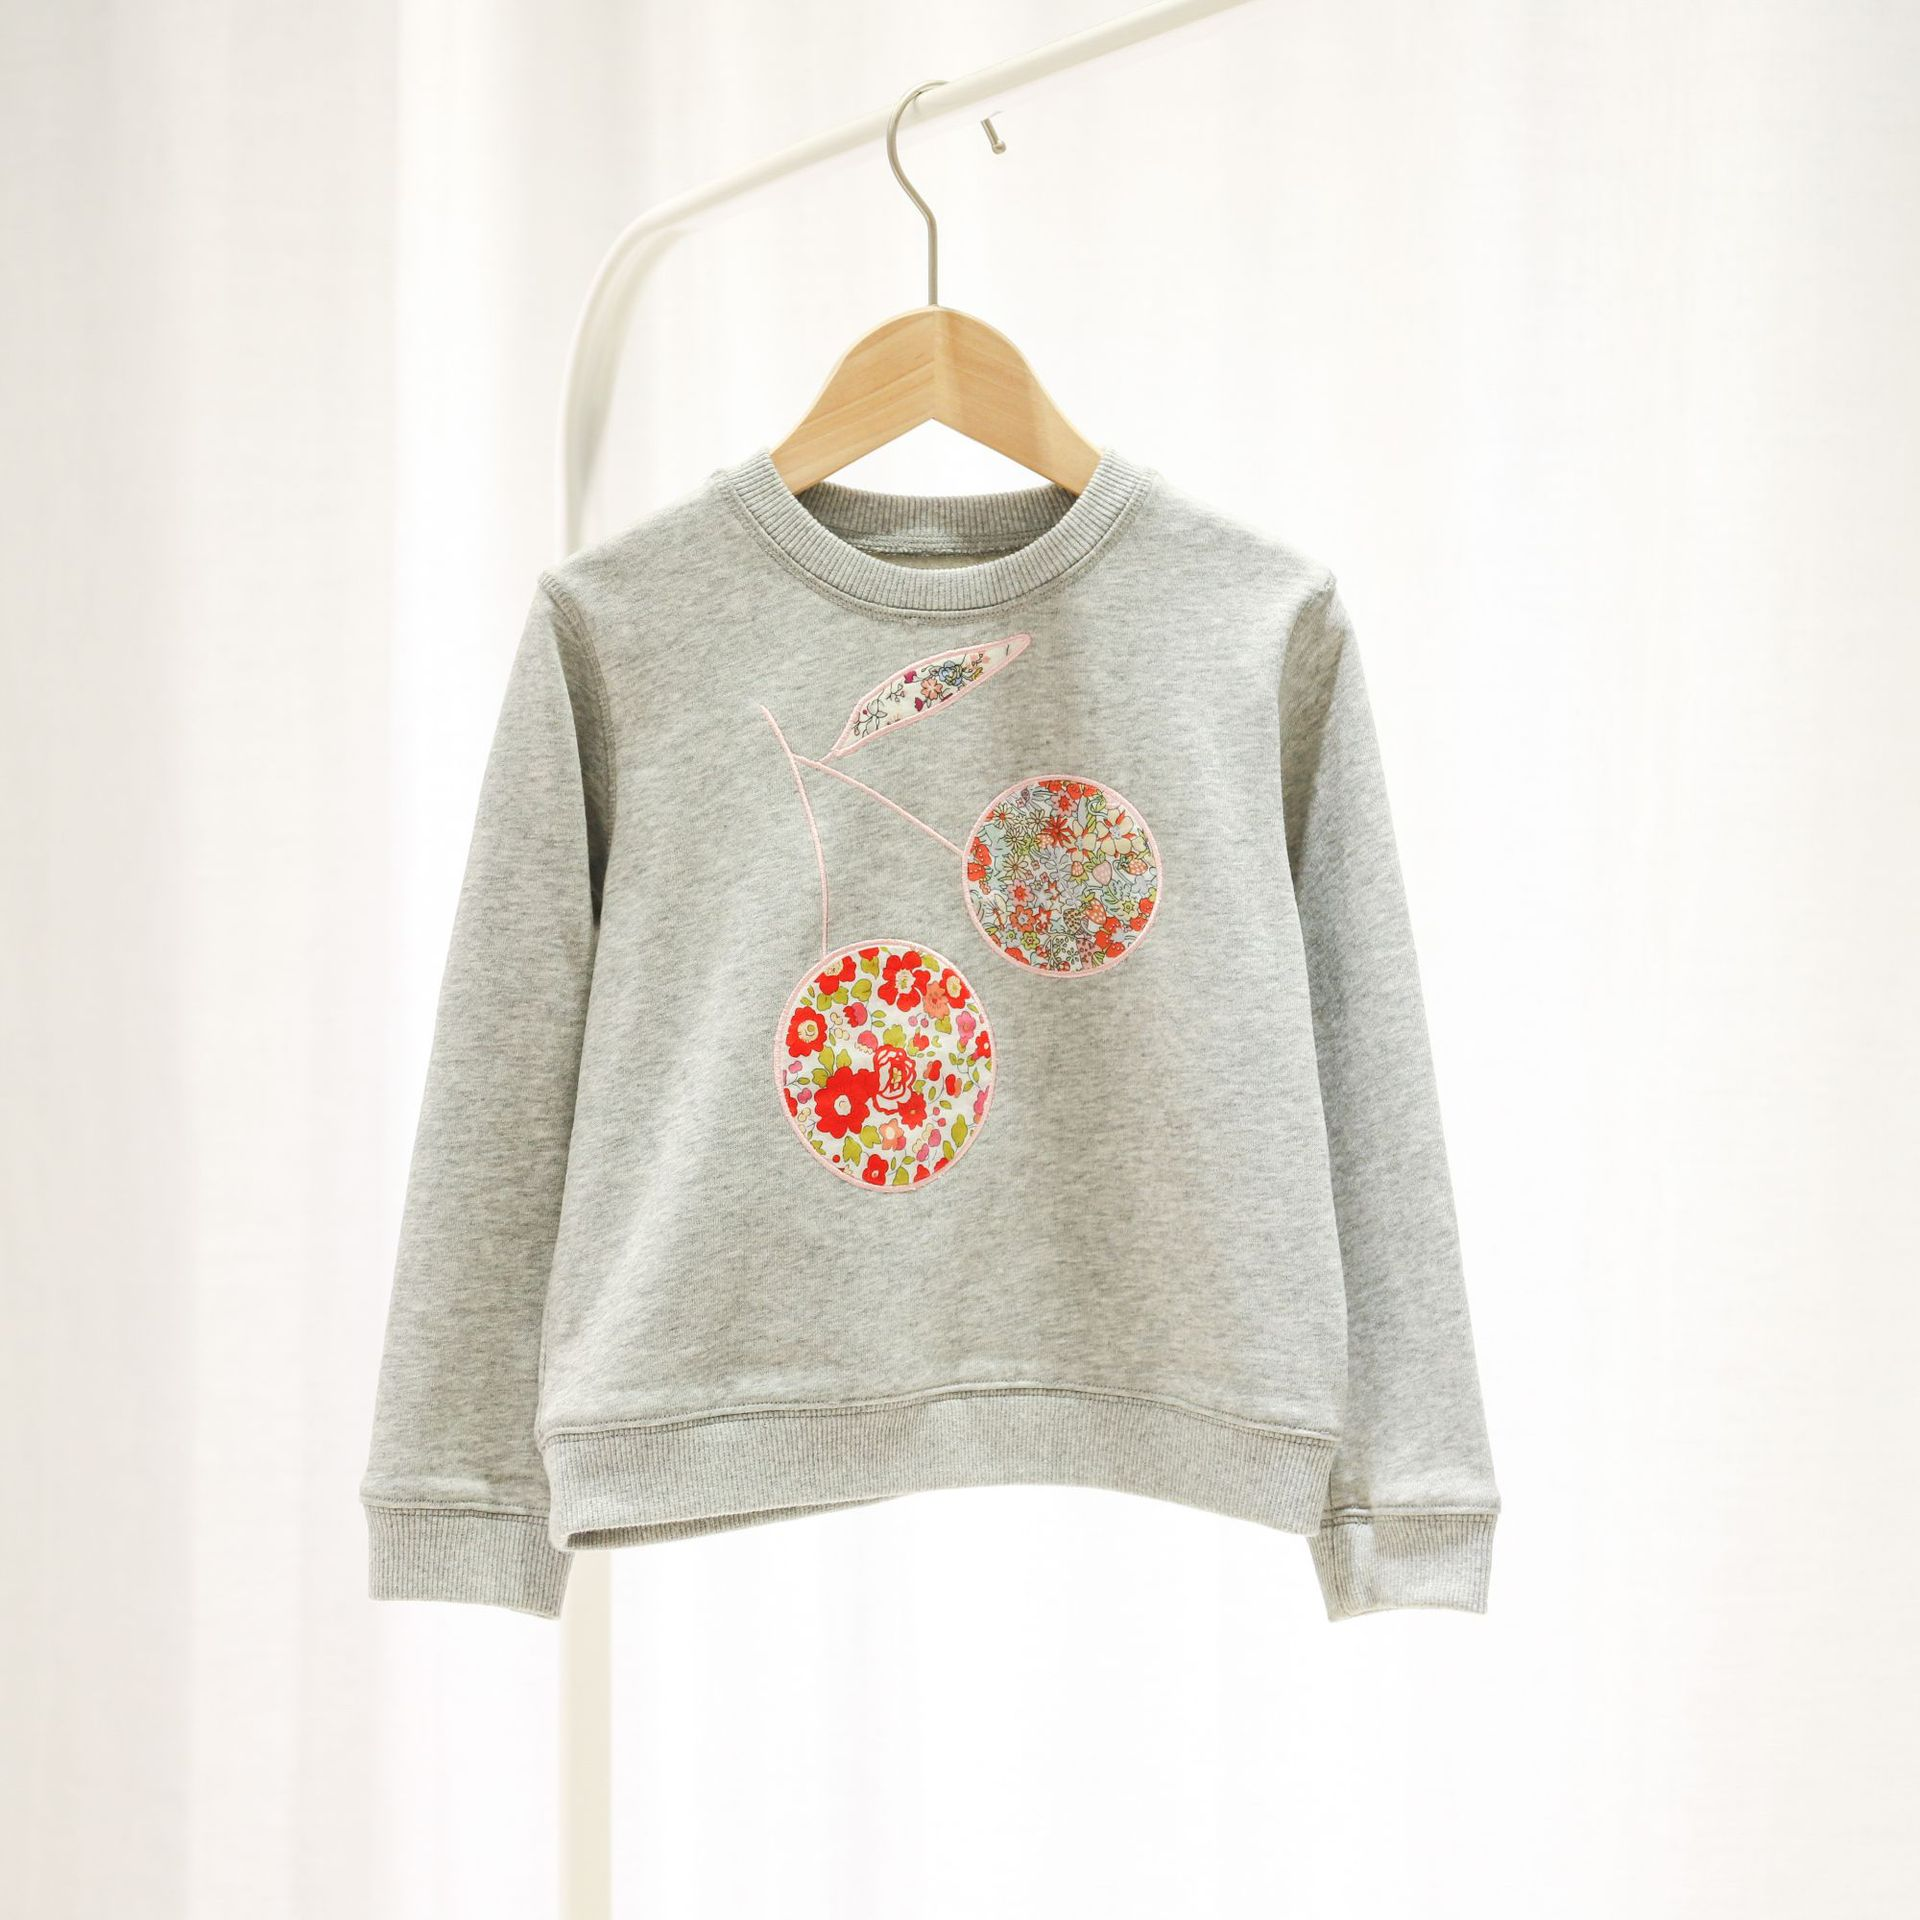 Pre-sale 2020 April 15th Baby Sweatshirt Floral Pattern O-neck Gray Color Cotton Kids Tops Long Sleeve Baby Tops